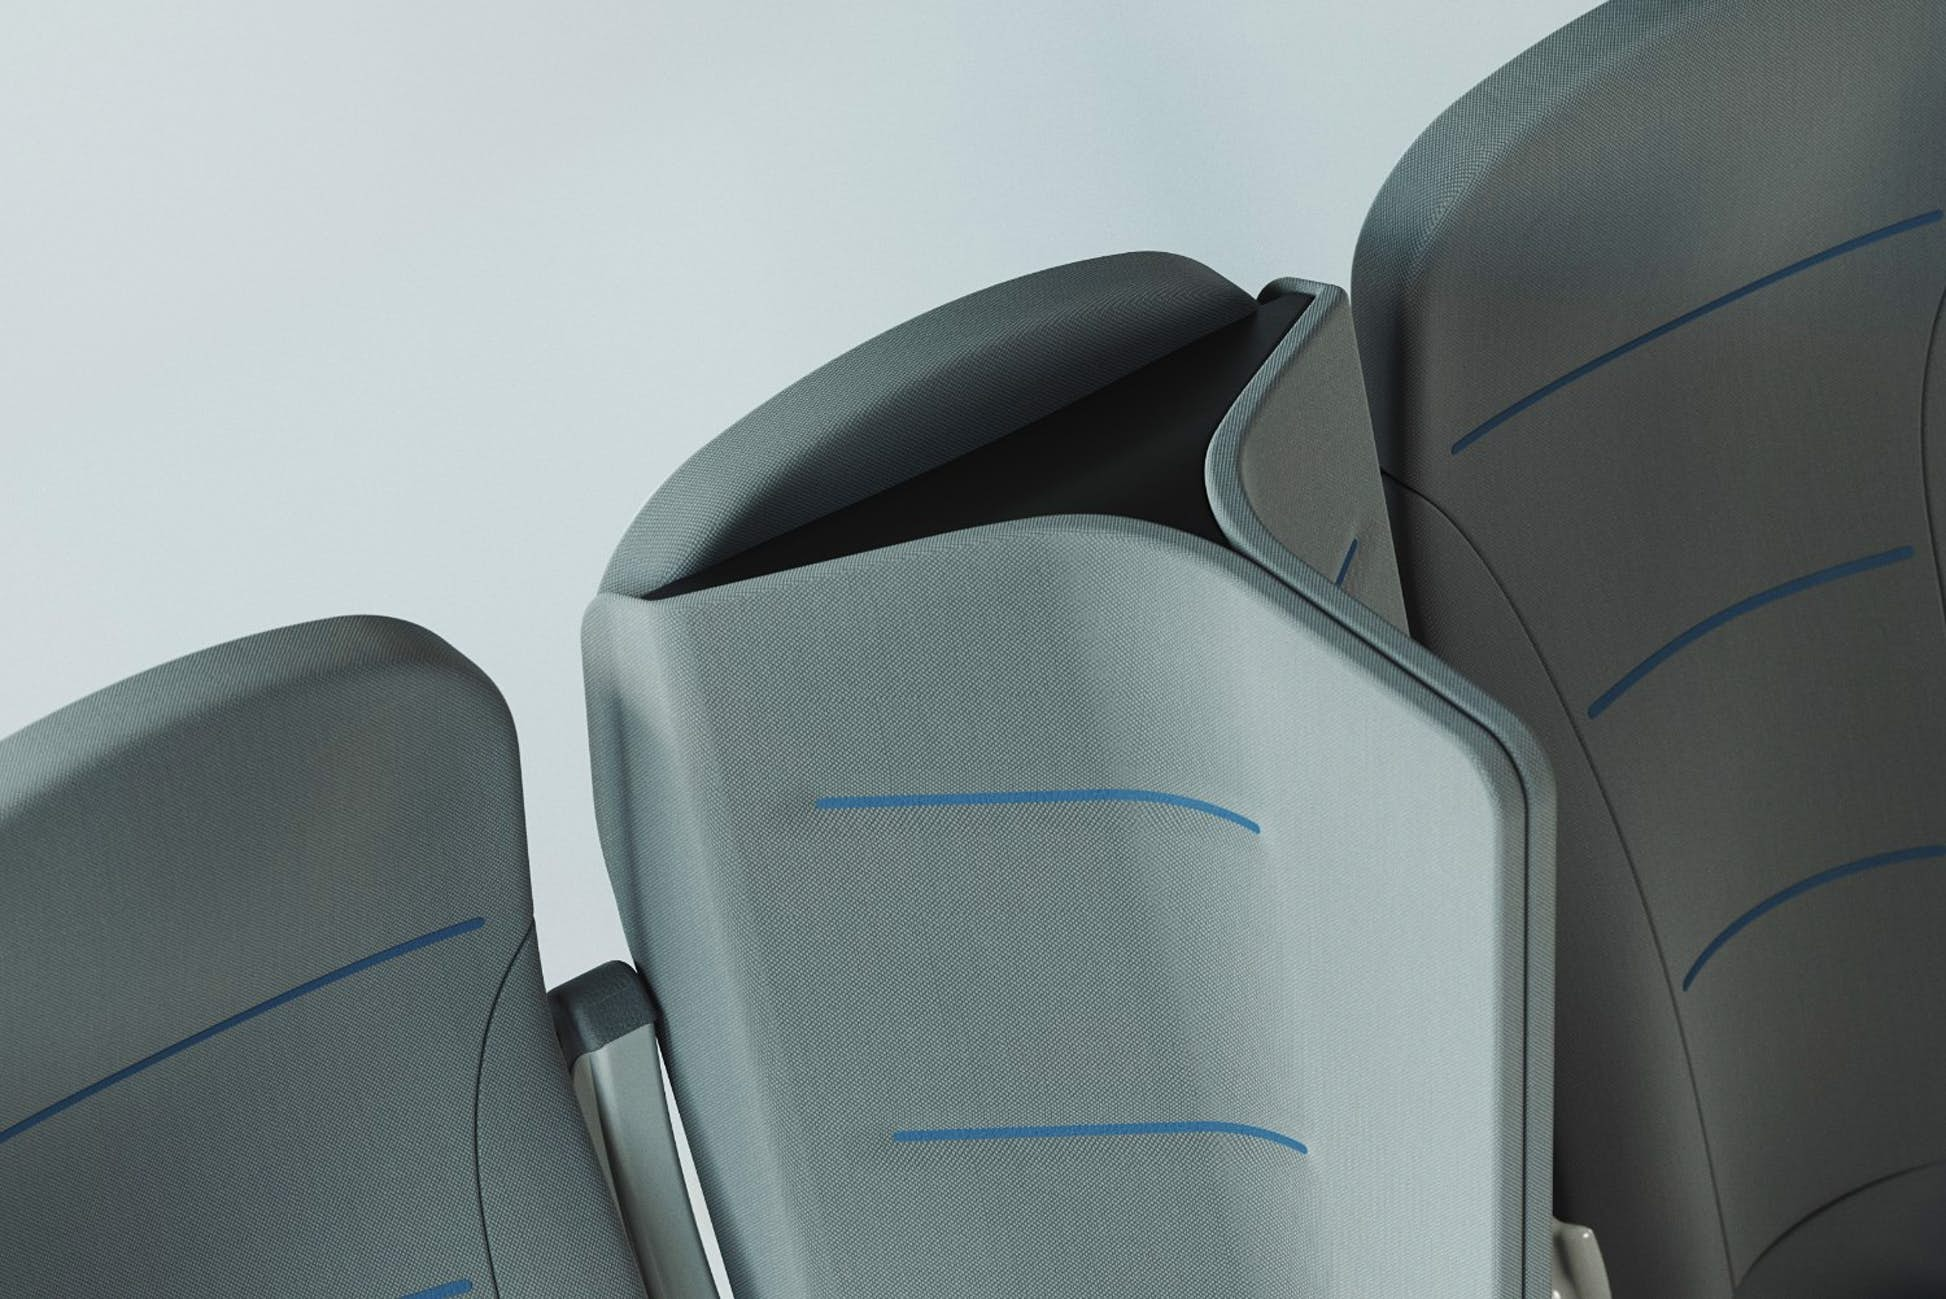 The curved design separates the travelers on either side © Universal Movement